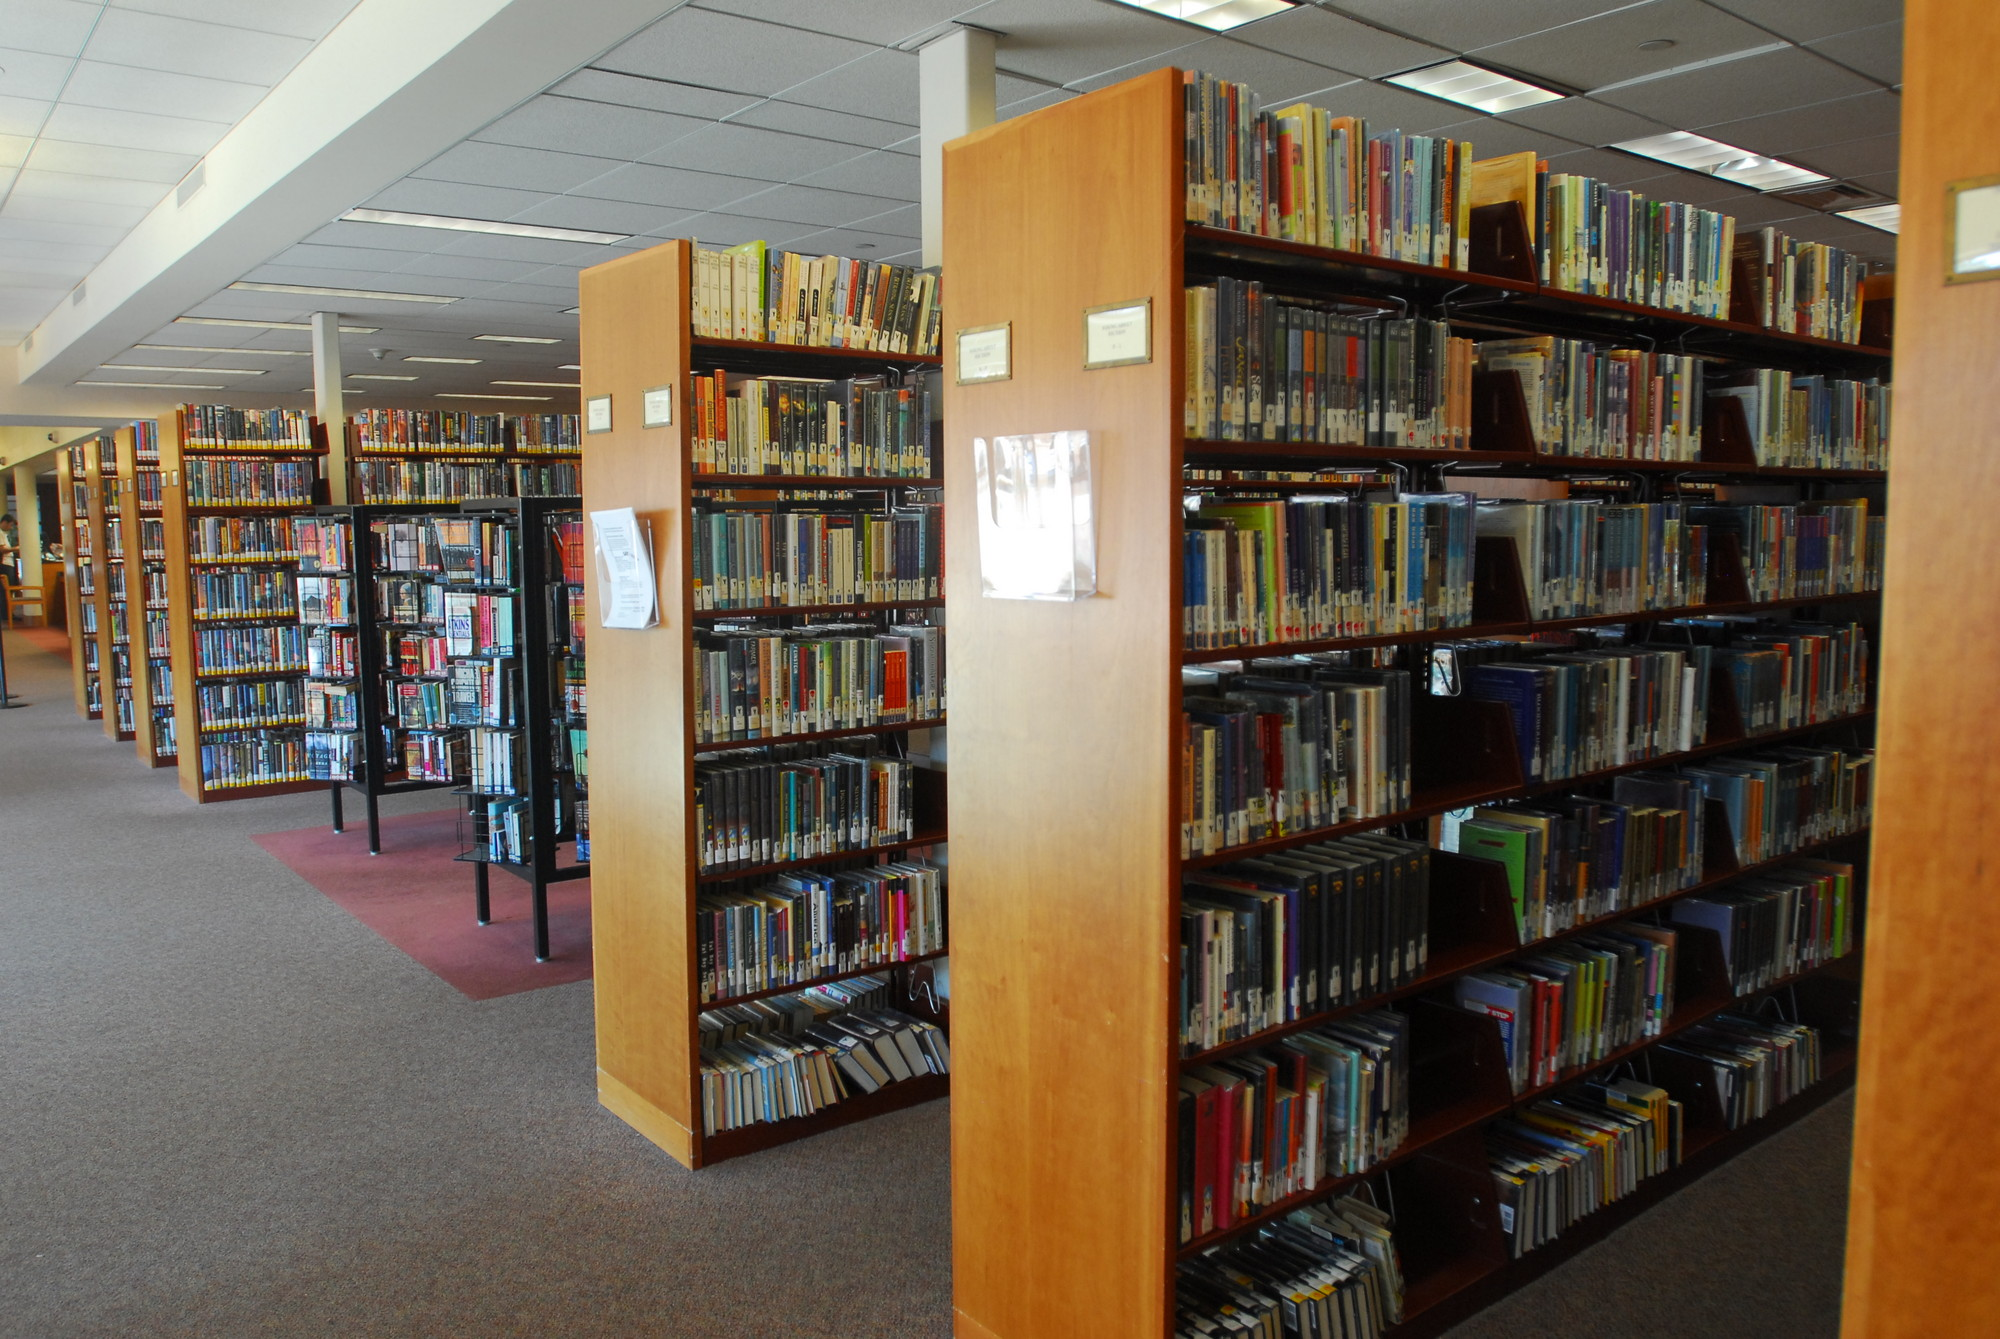 Peninsula Public Library in Lawrence and the Hewlett-Woodmere Public Library in Hewlett serve as safe havens for patrons after devastating storms such as Hurricane Sandy.